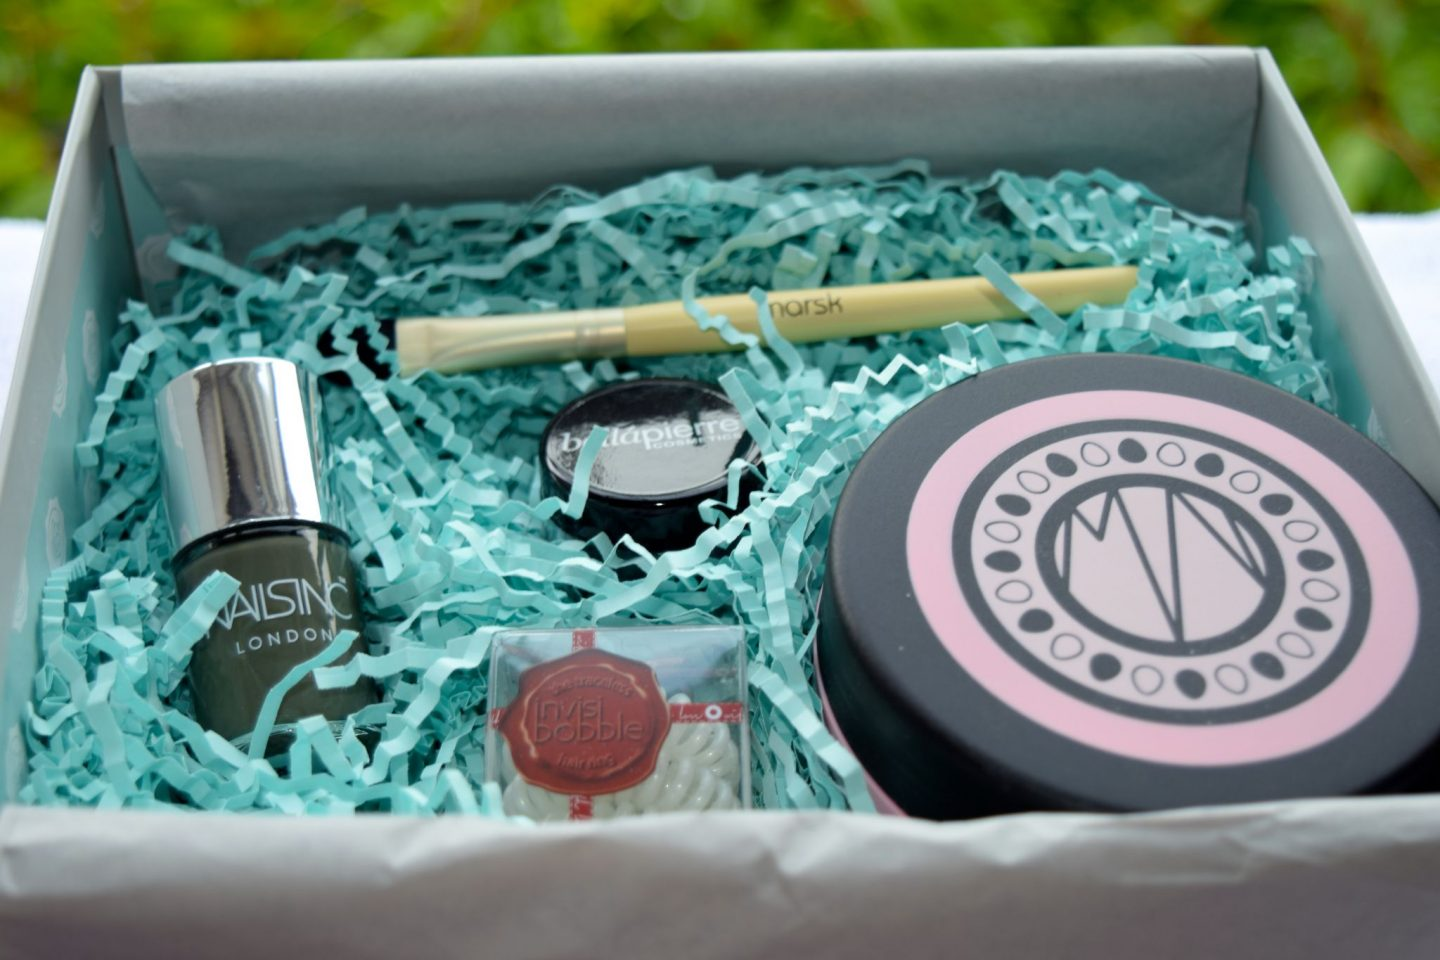 Glossybox September 2015 UK contents